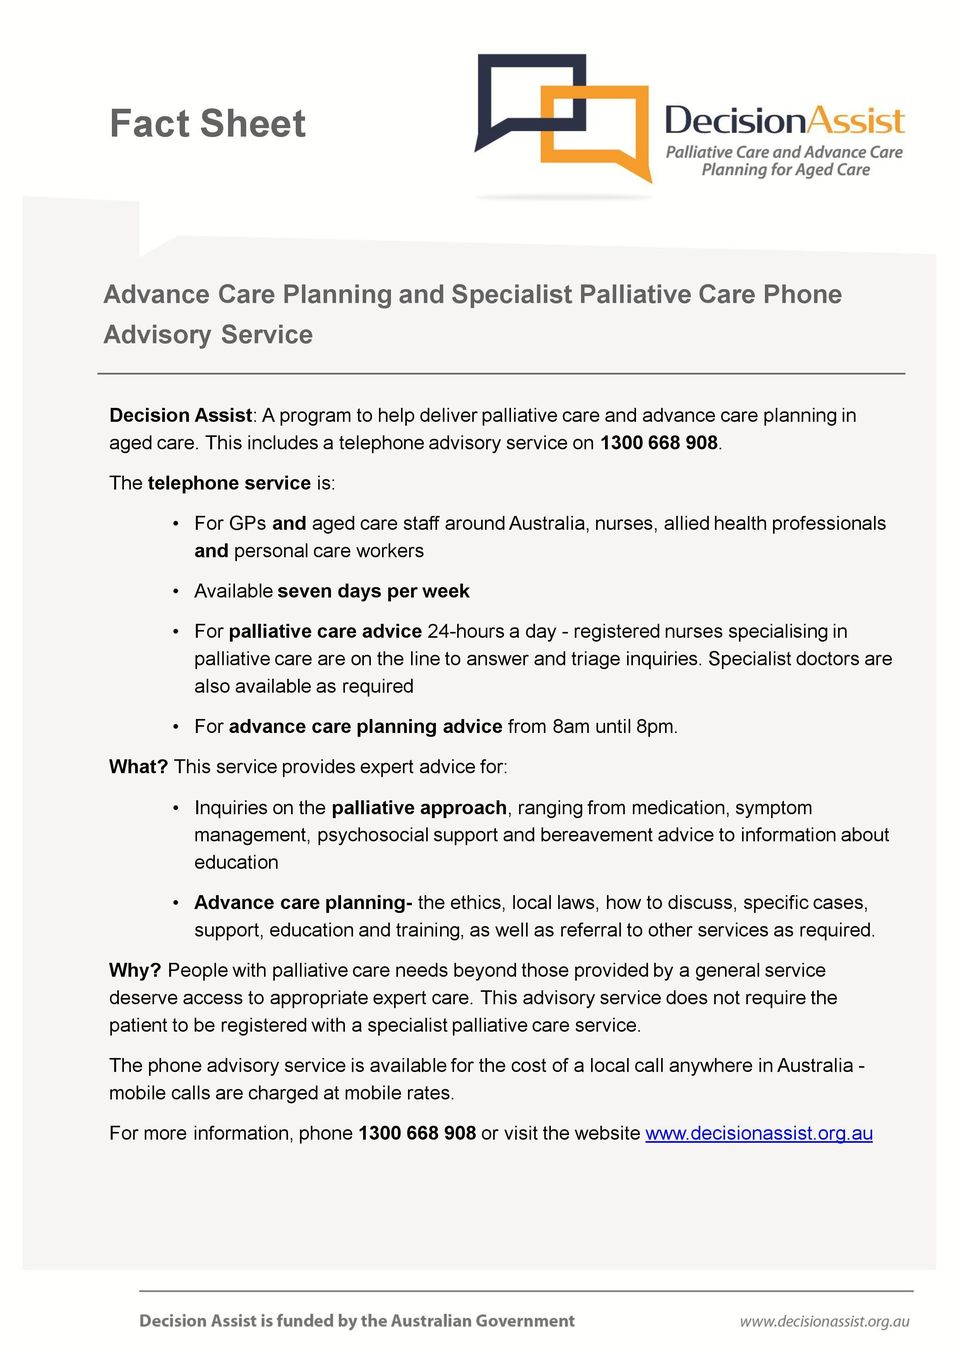 The telephone service is: For GPs and aged care staff around Australia, nurses, allied health professionals and personal care workers Available seven days per week For palliative care advice 24-hours